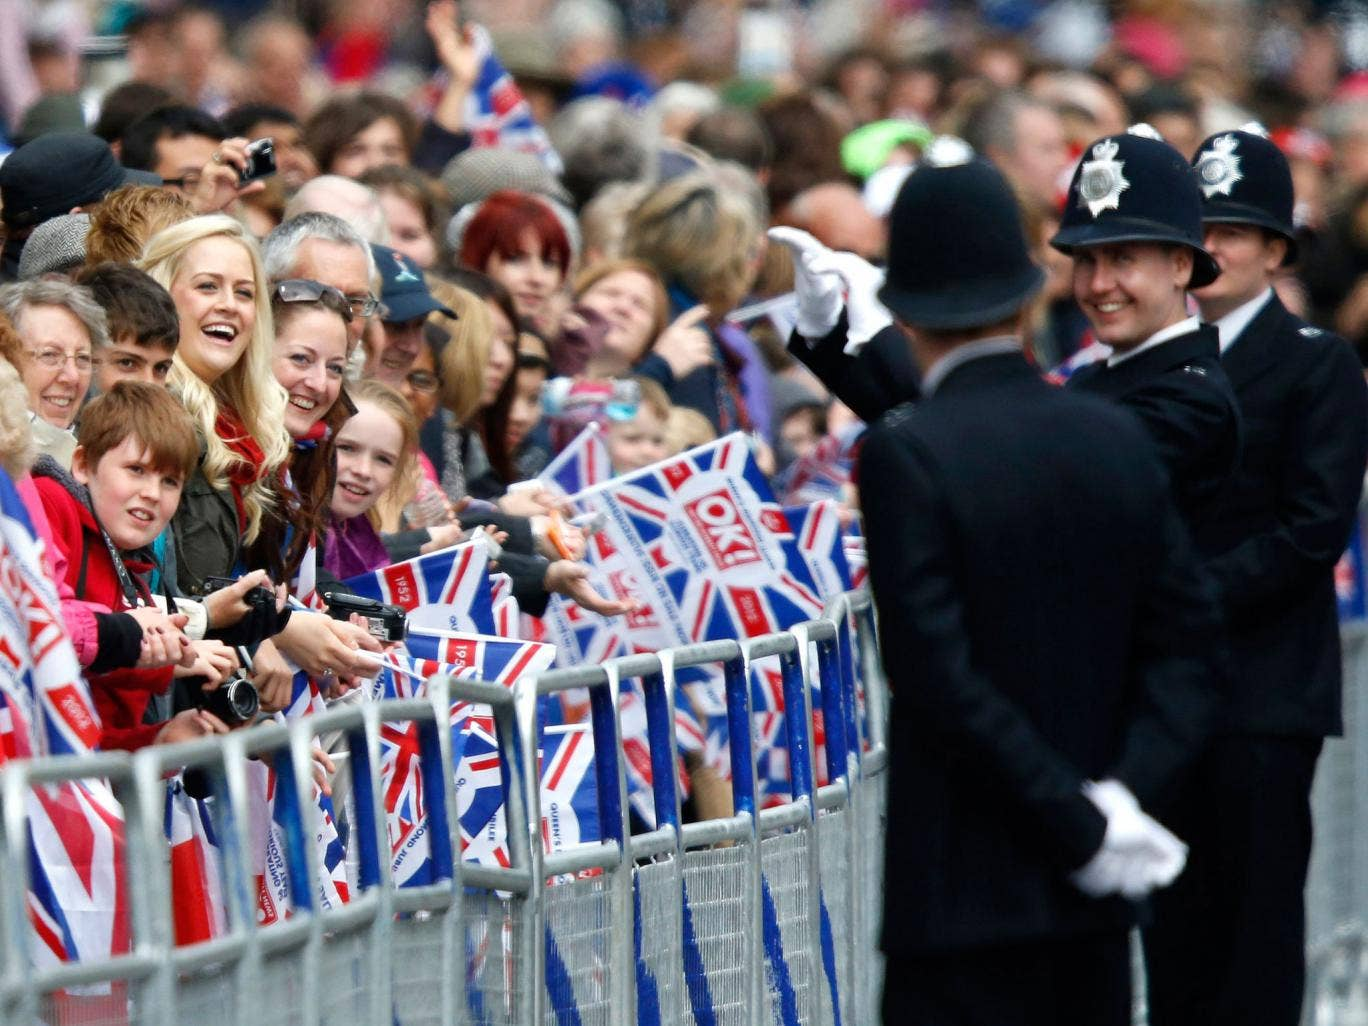 The Government says people in the UK are slightly happier in 2013 because of the Olympics and Diamond Jubilee celebrations